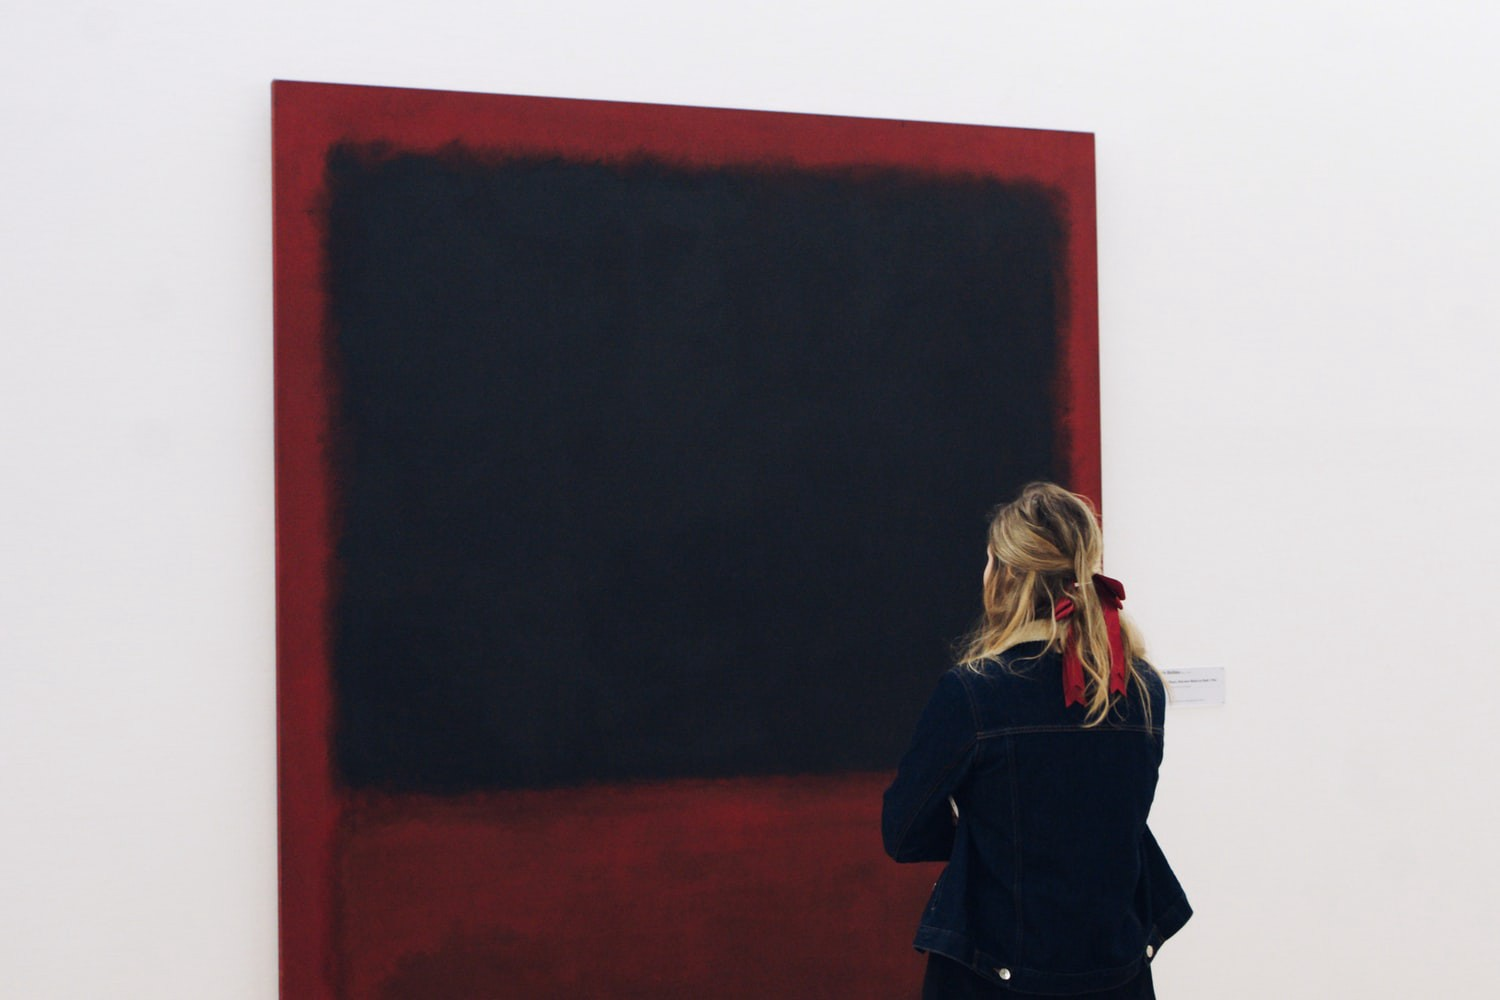 Woman staring at painting in a museum.